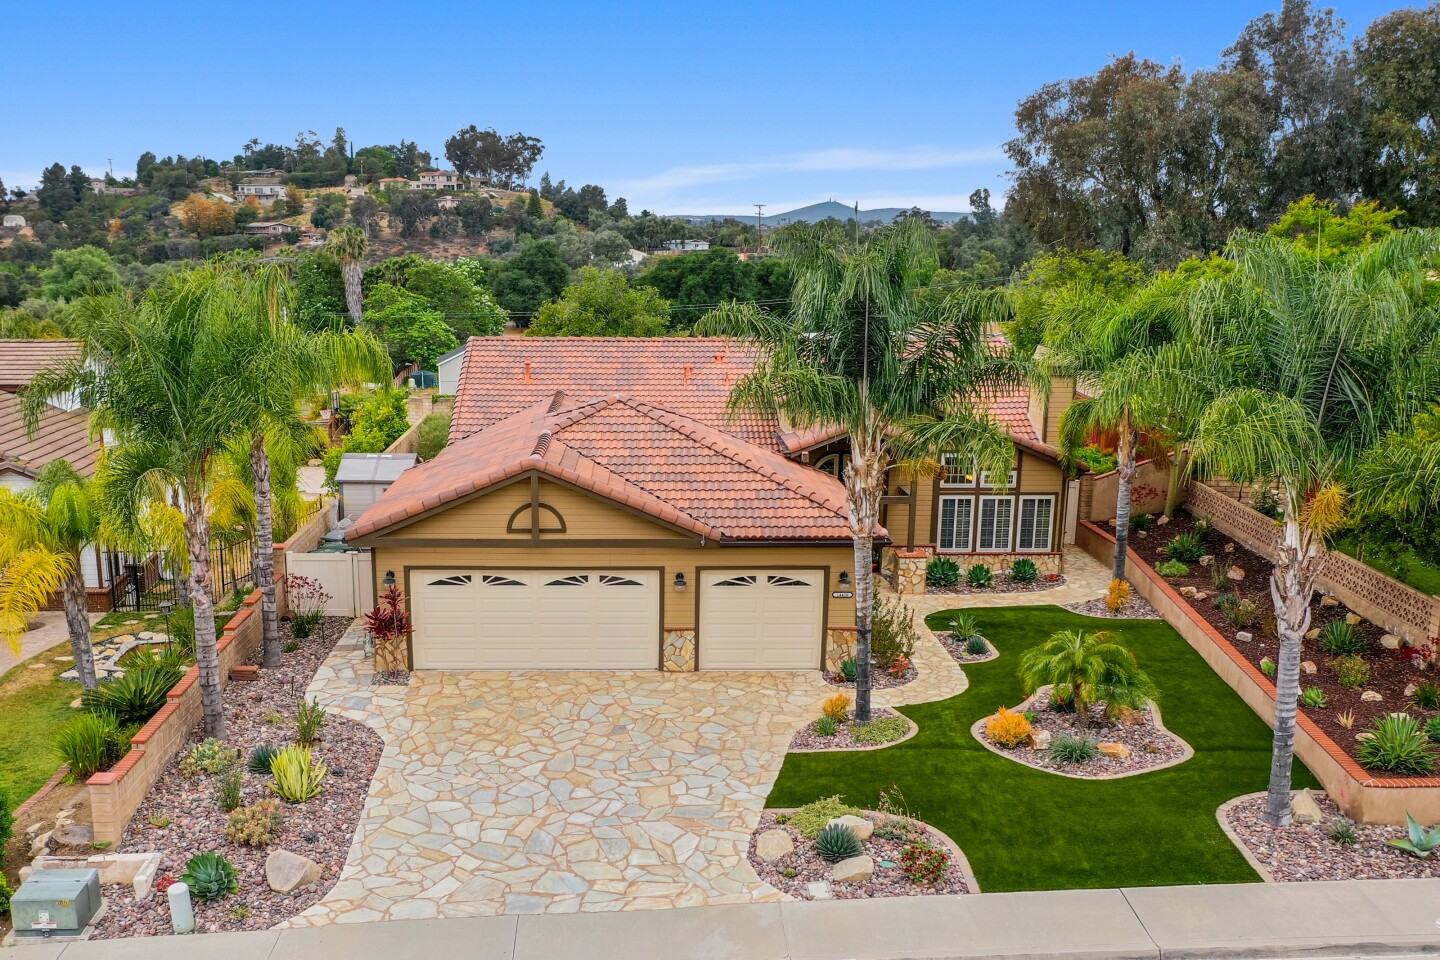 14420 Silver Heights Rd, Poway, CA 92064